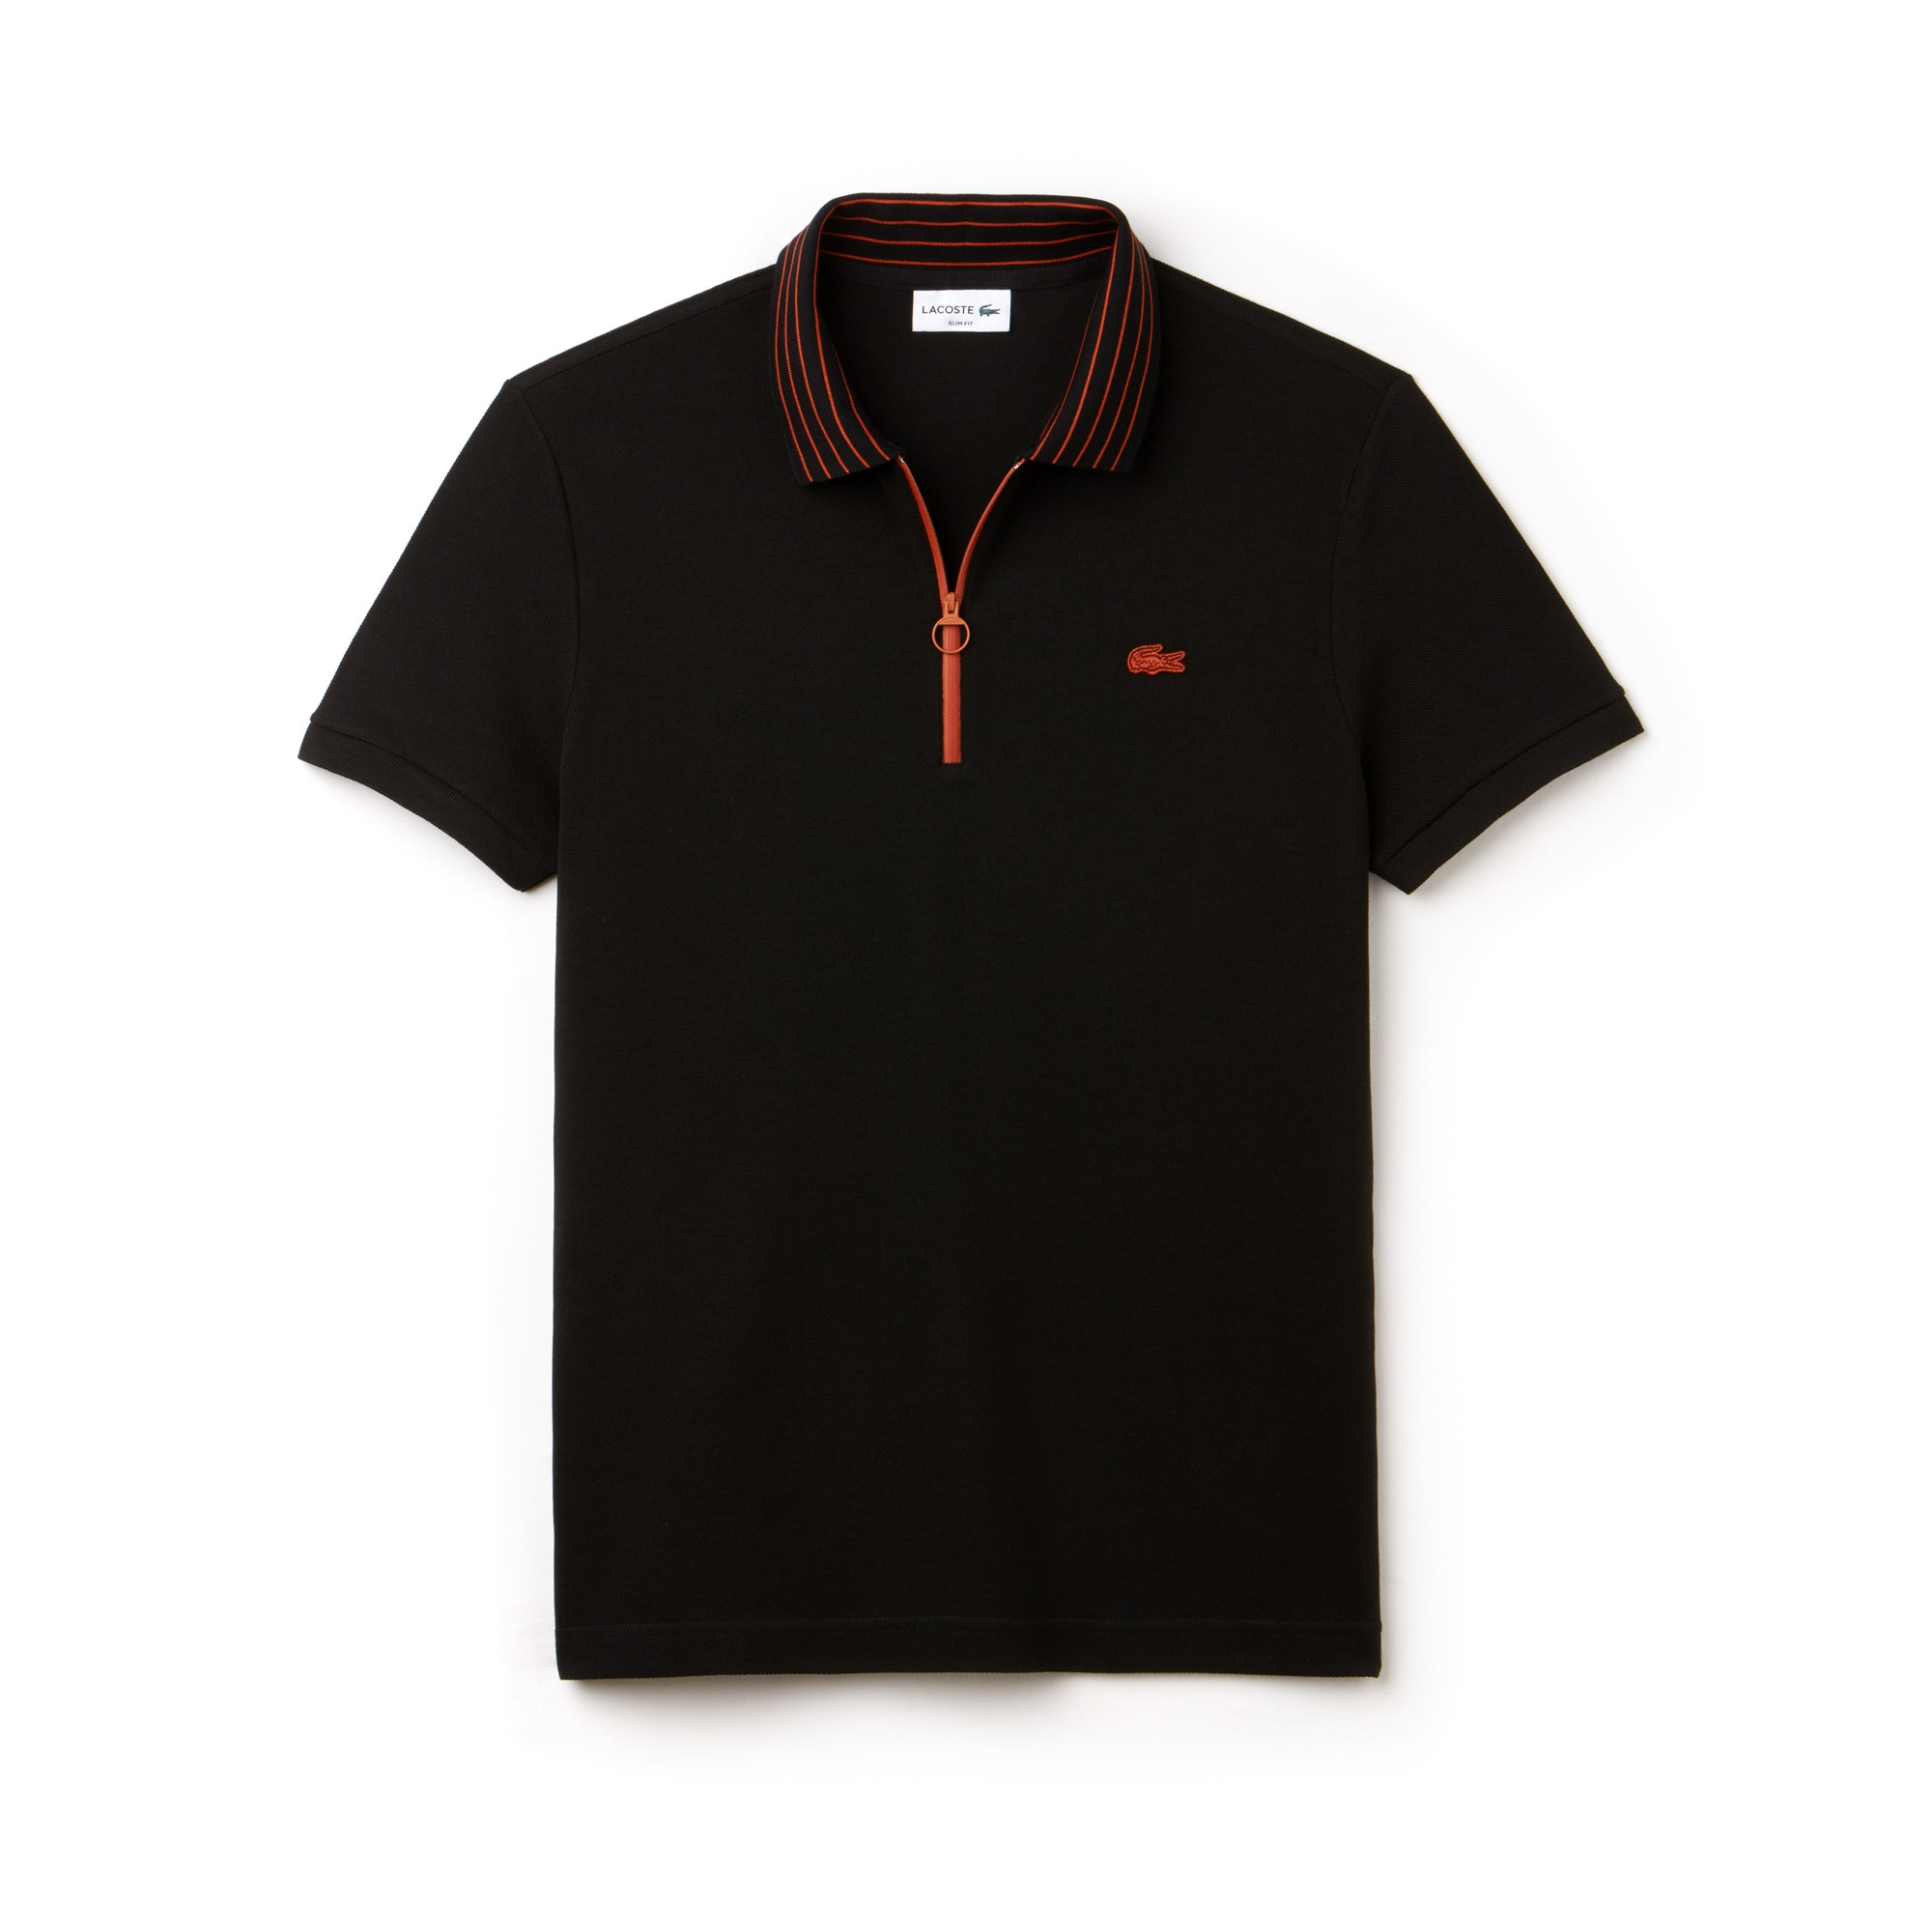 Men's Lacoste Slim Fit Contrasting Zip Neck Petit Piqué Polo